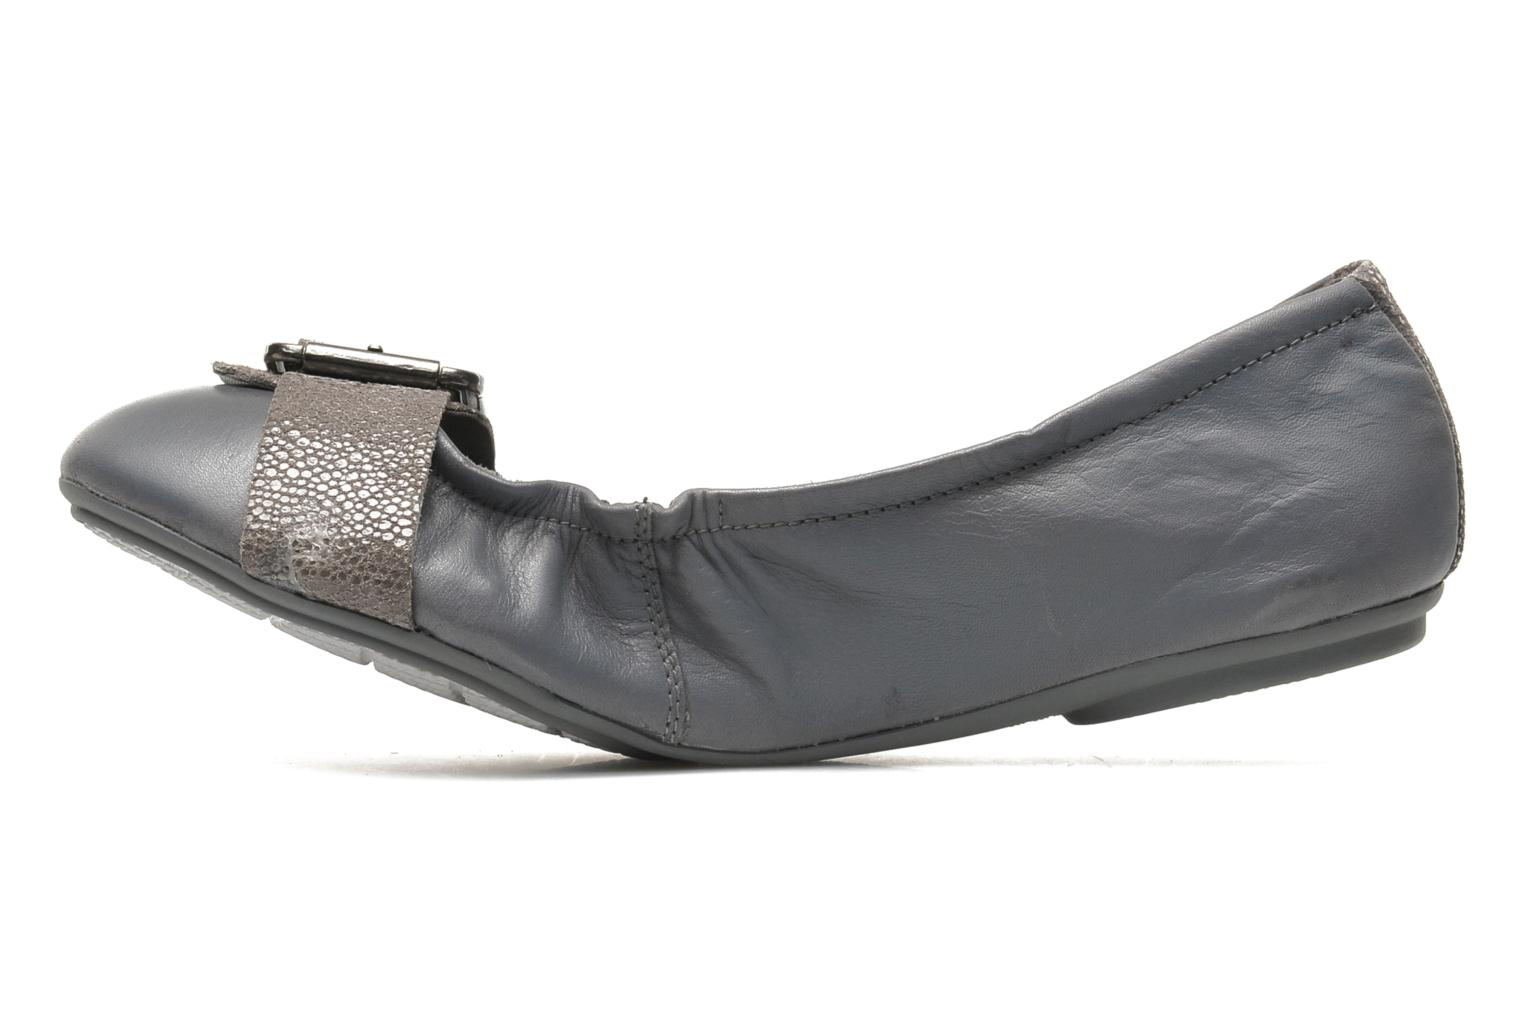 Finnley Chaste Grey leather